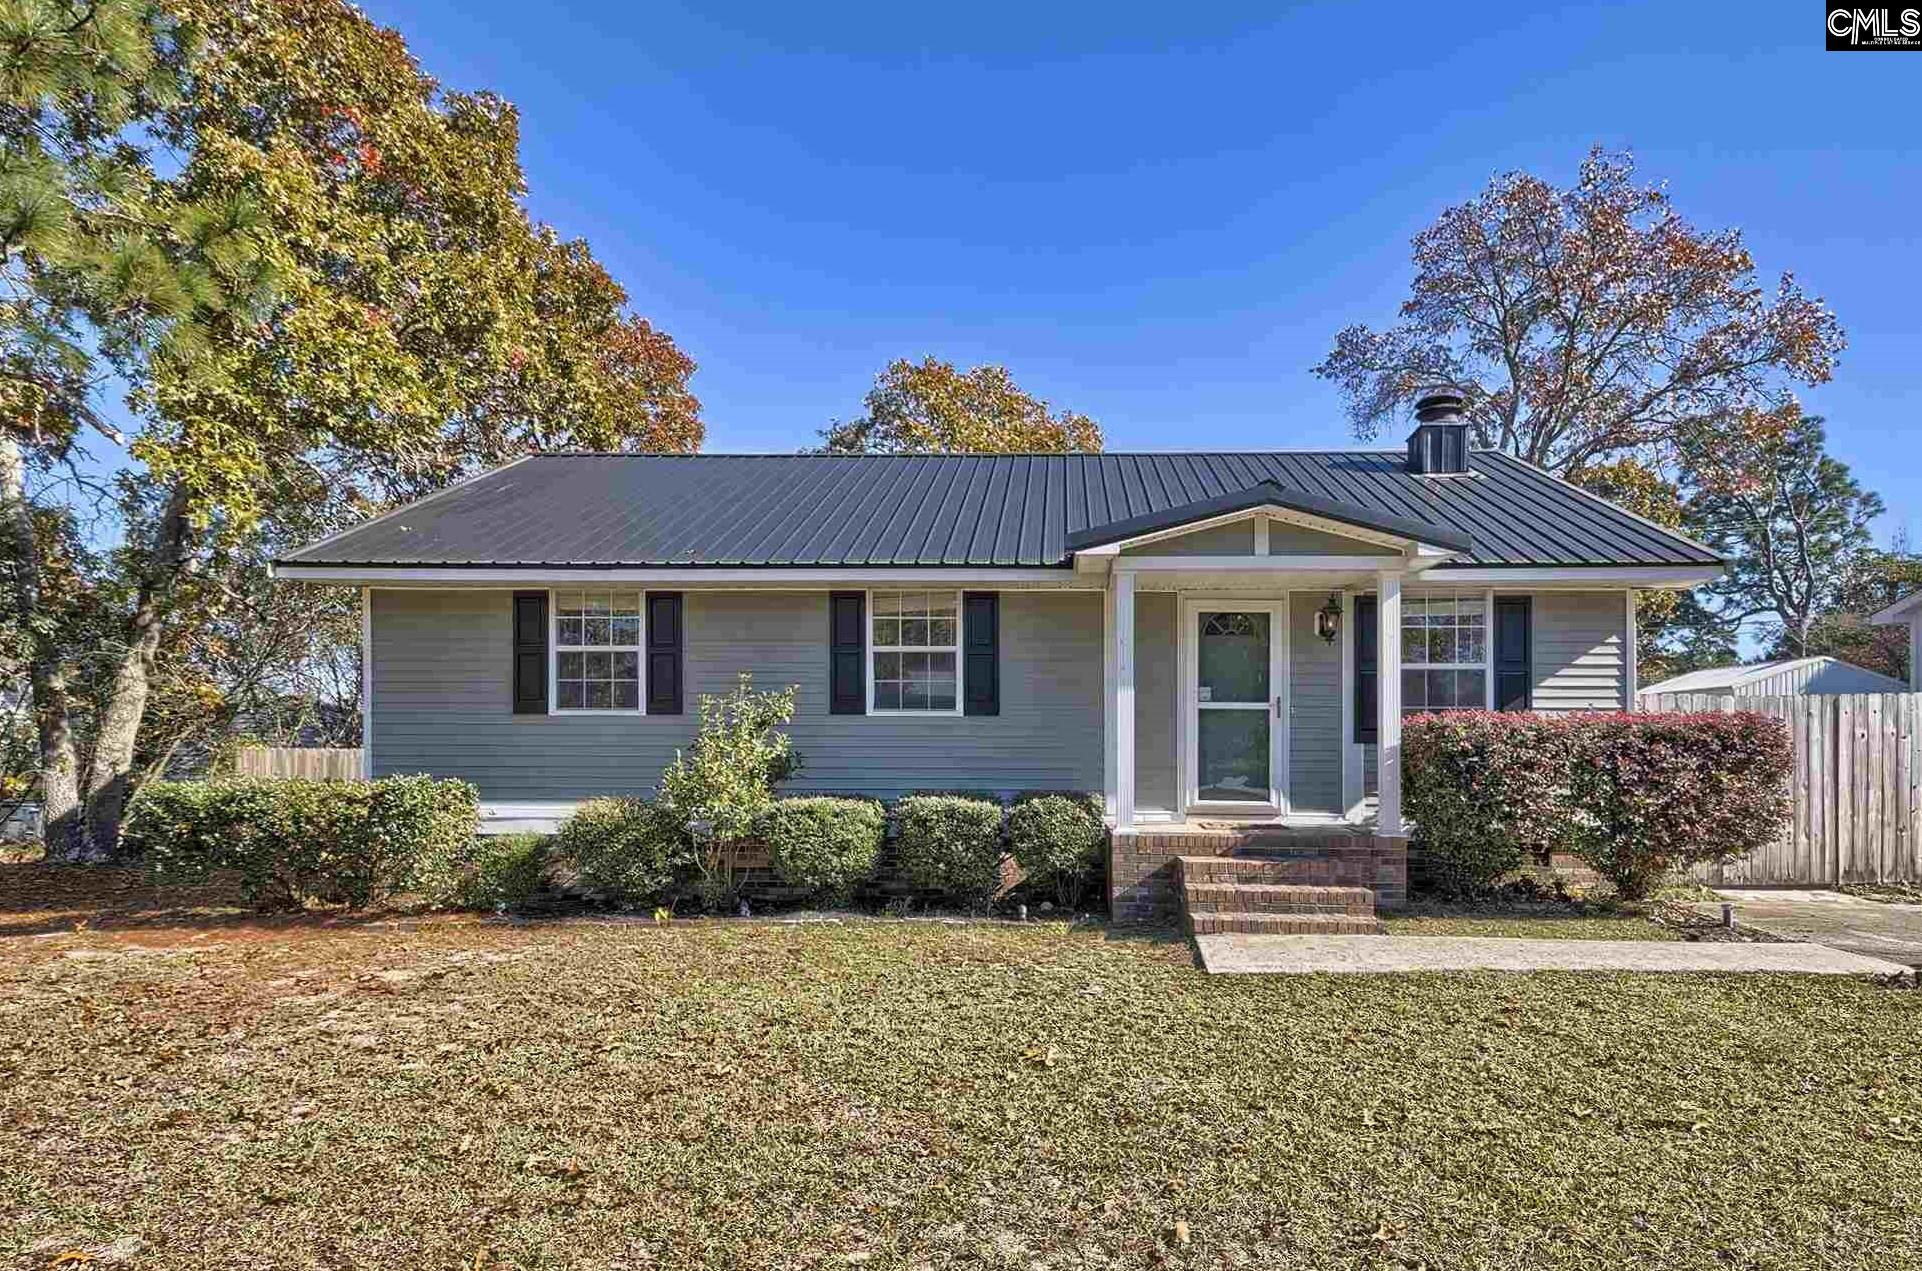 112 N Wrenwood Lexington, SC 29073